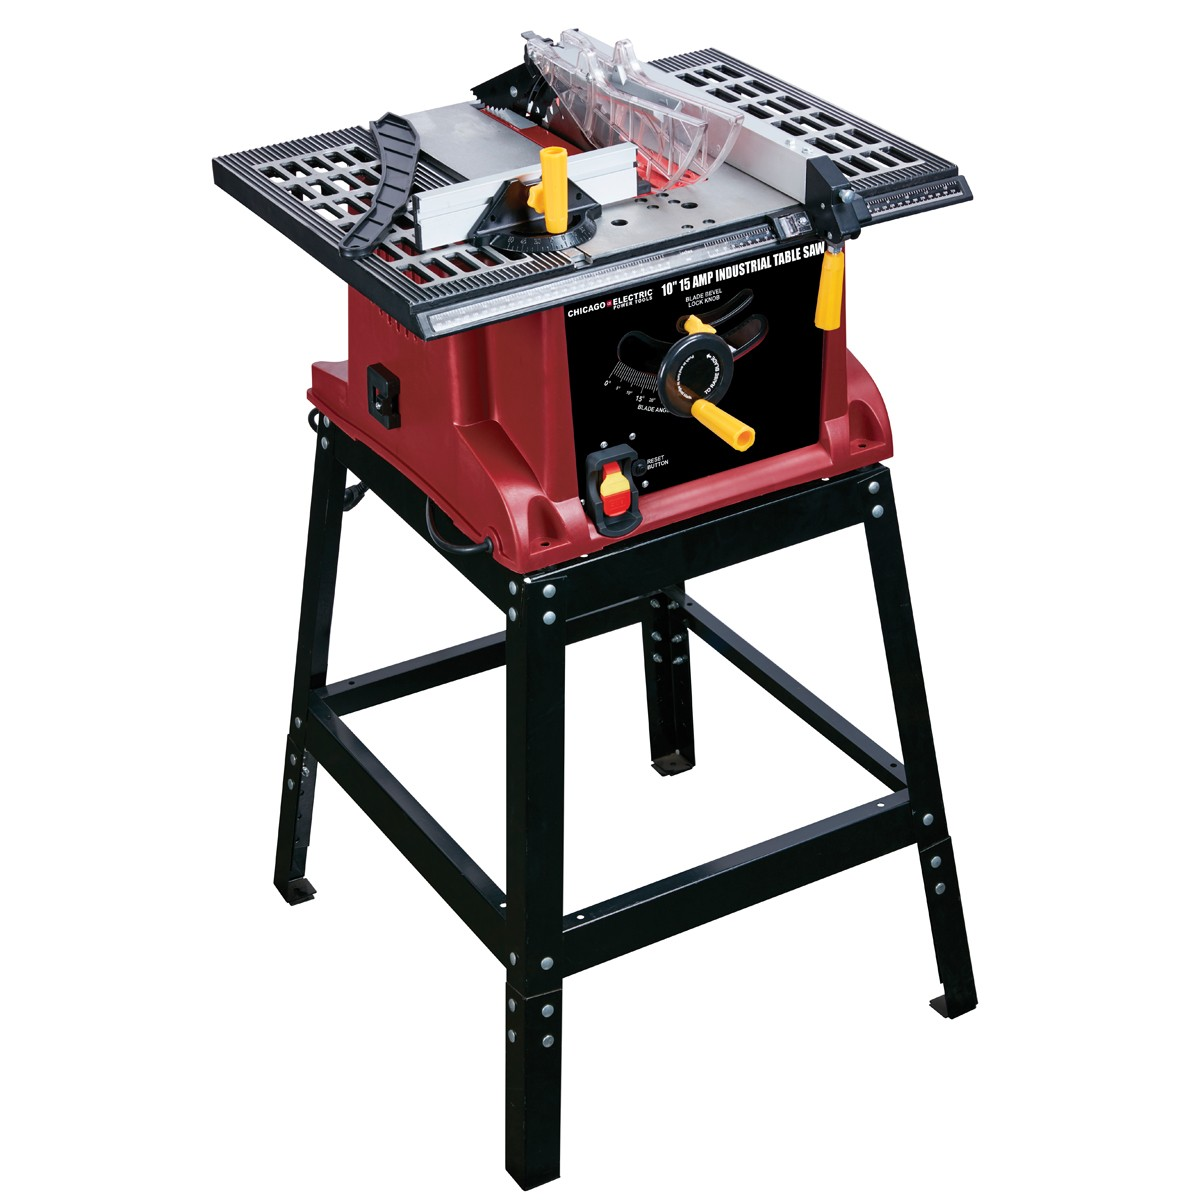 Harbor Freight Table Saw - Arnold Solof